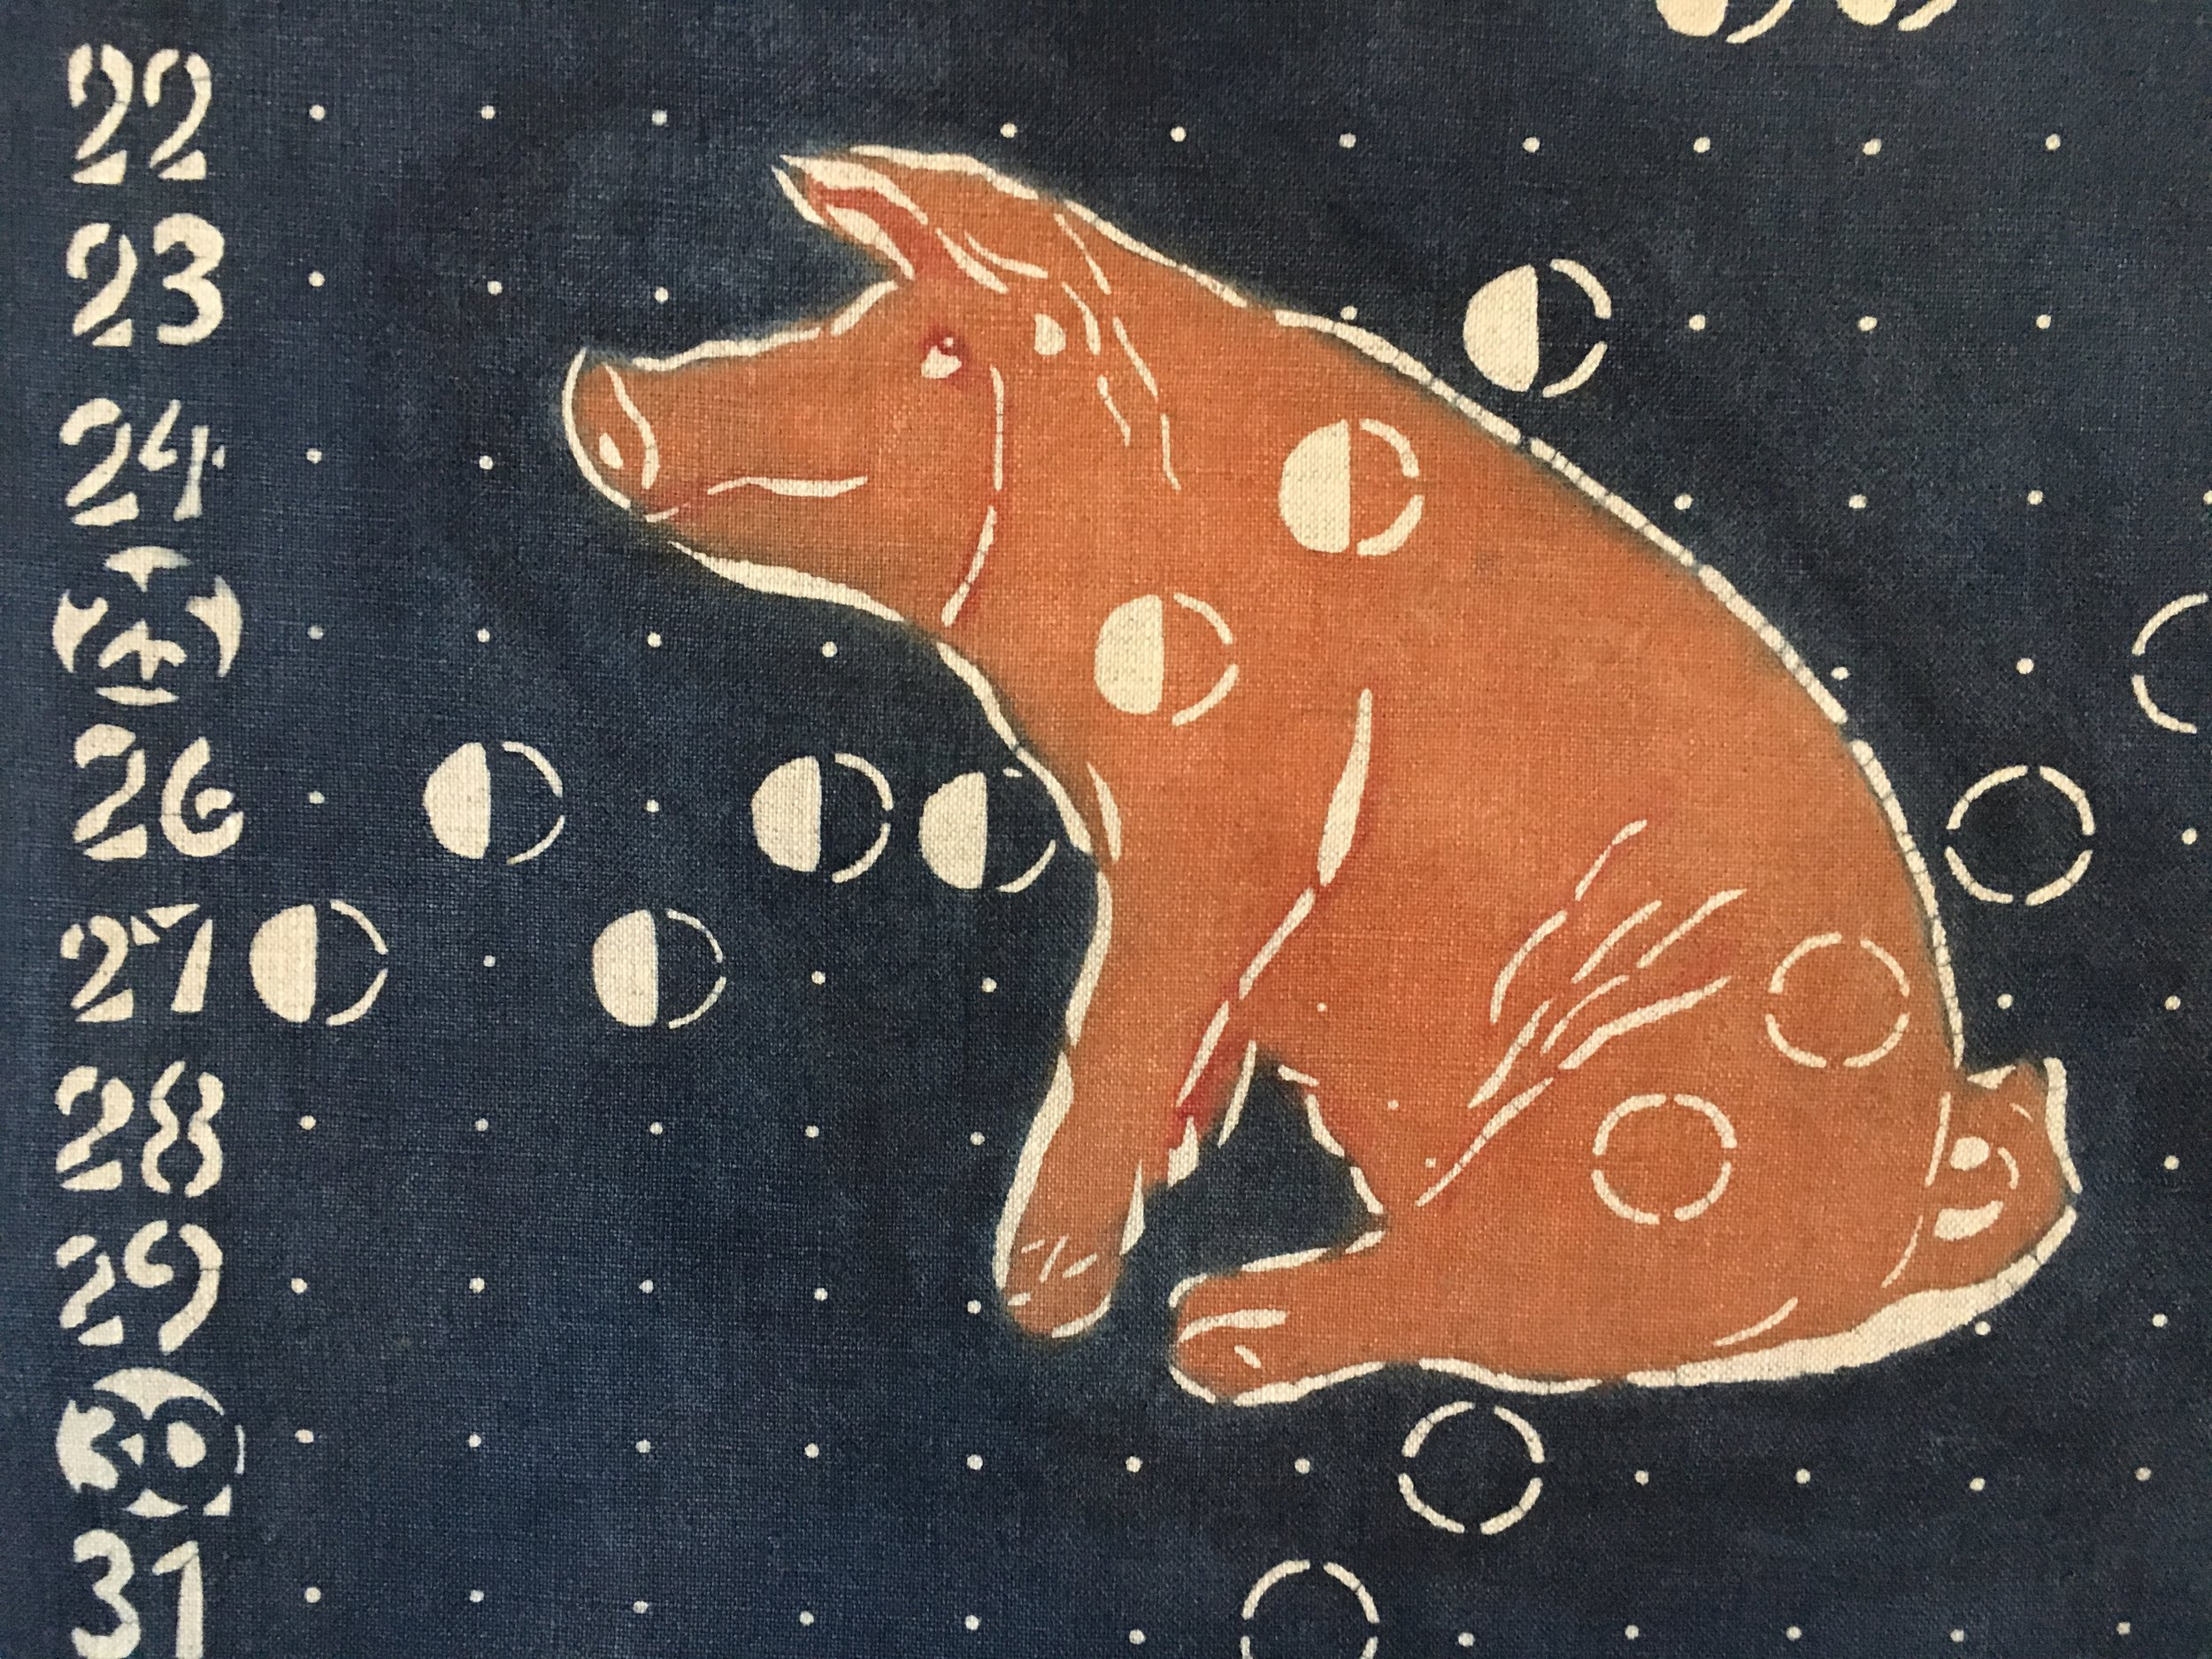 2019 Year of the Pig Lunar Calendar (Detail)